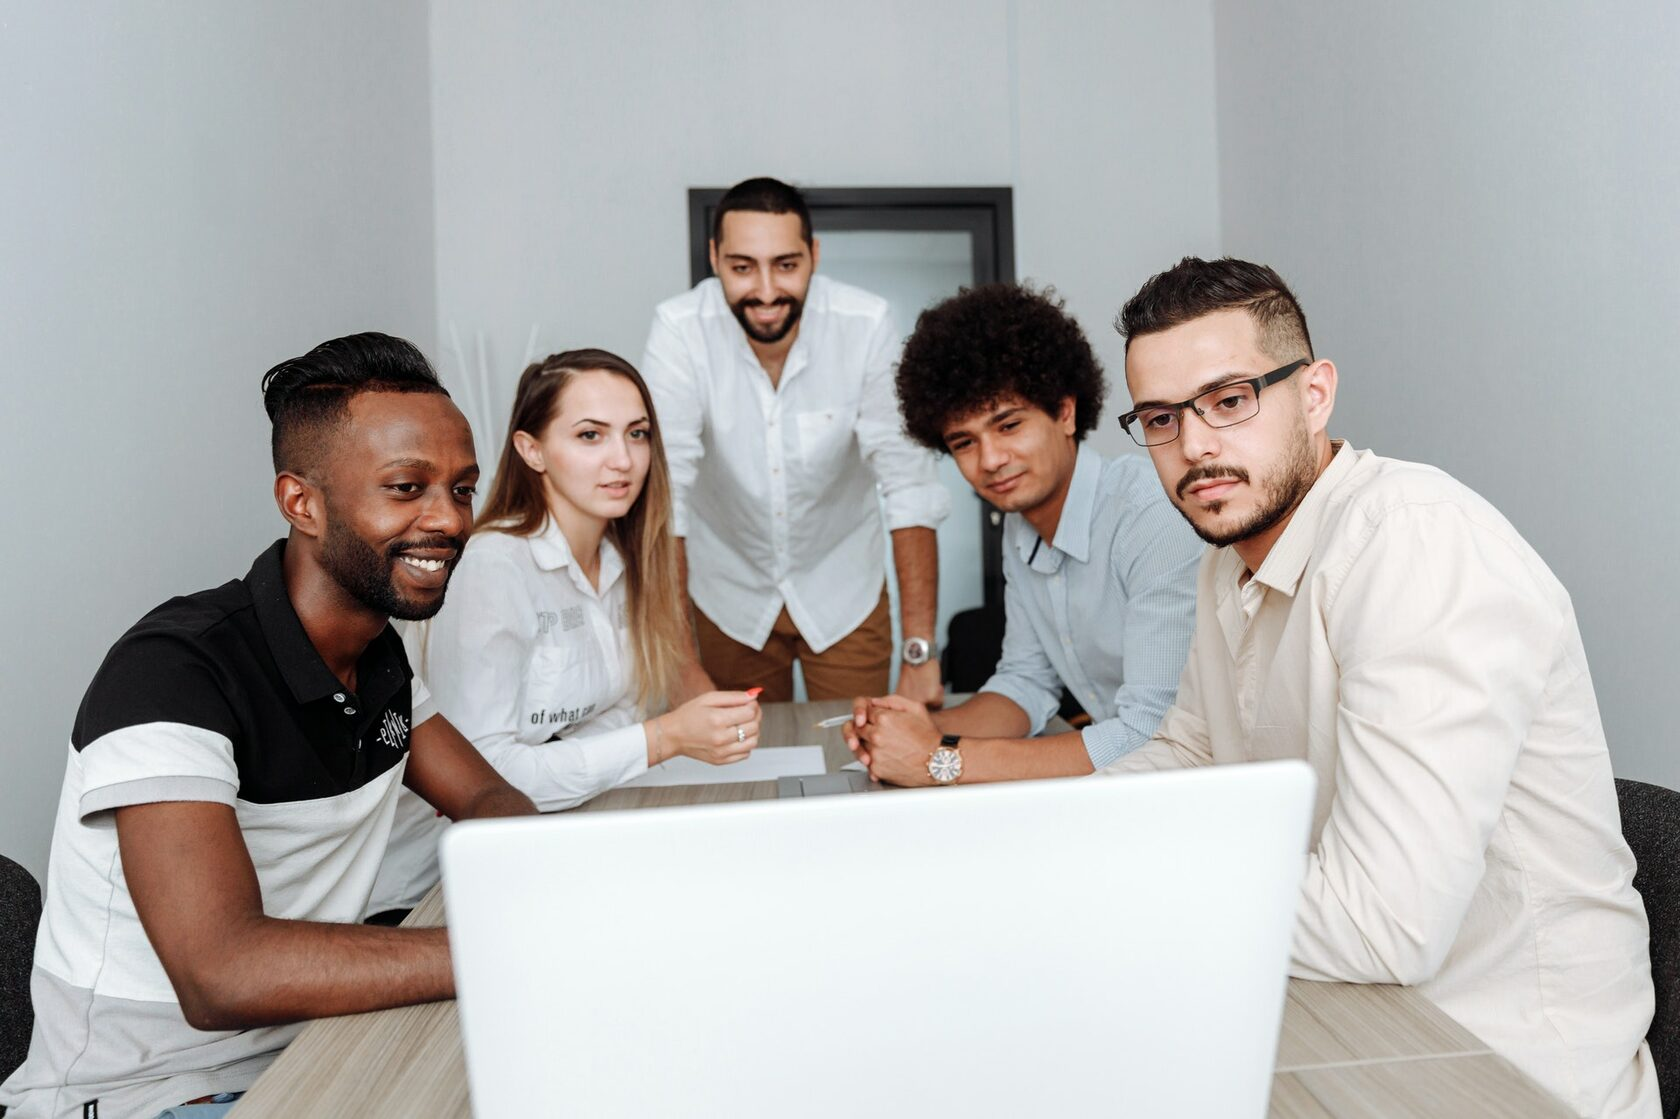 An image of a group of people in an office setting working for a company